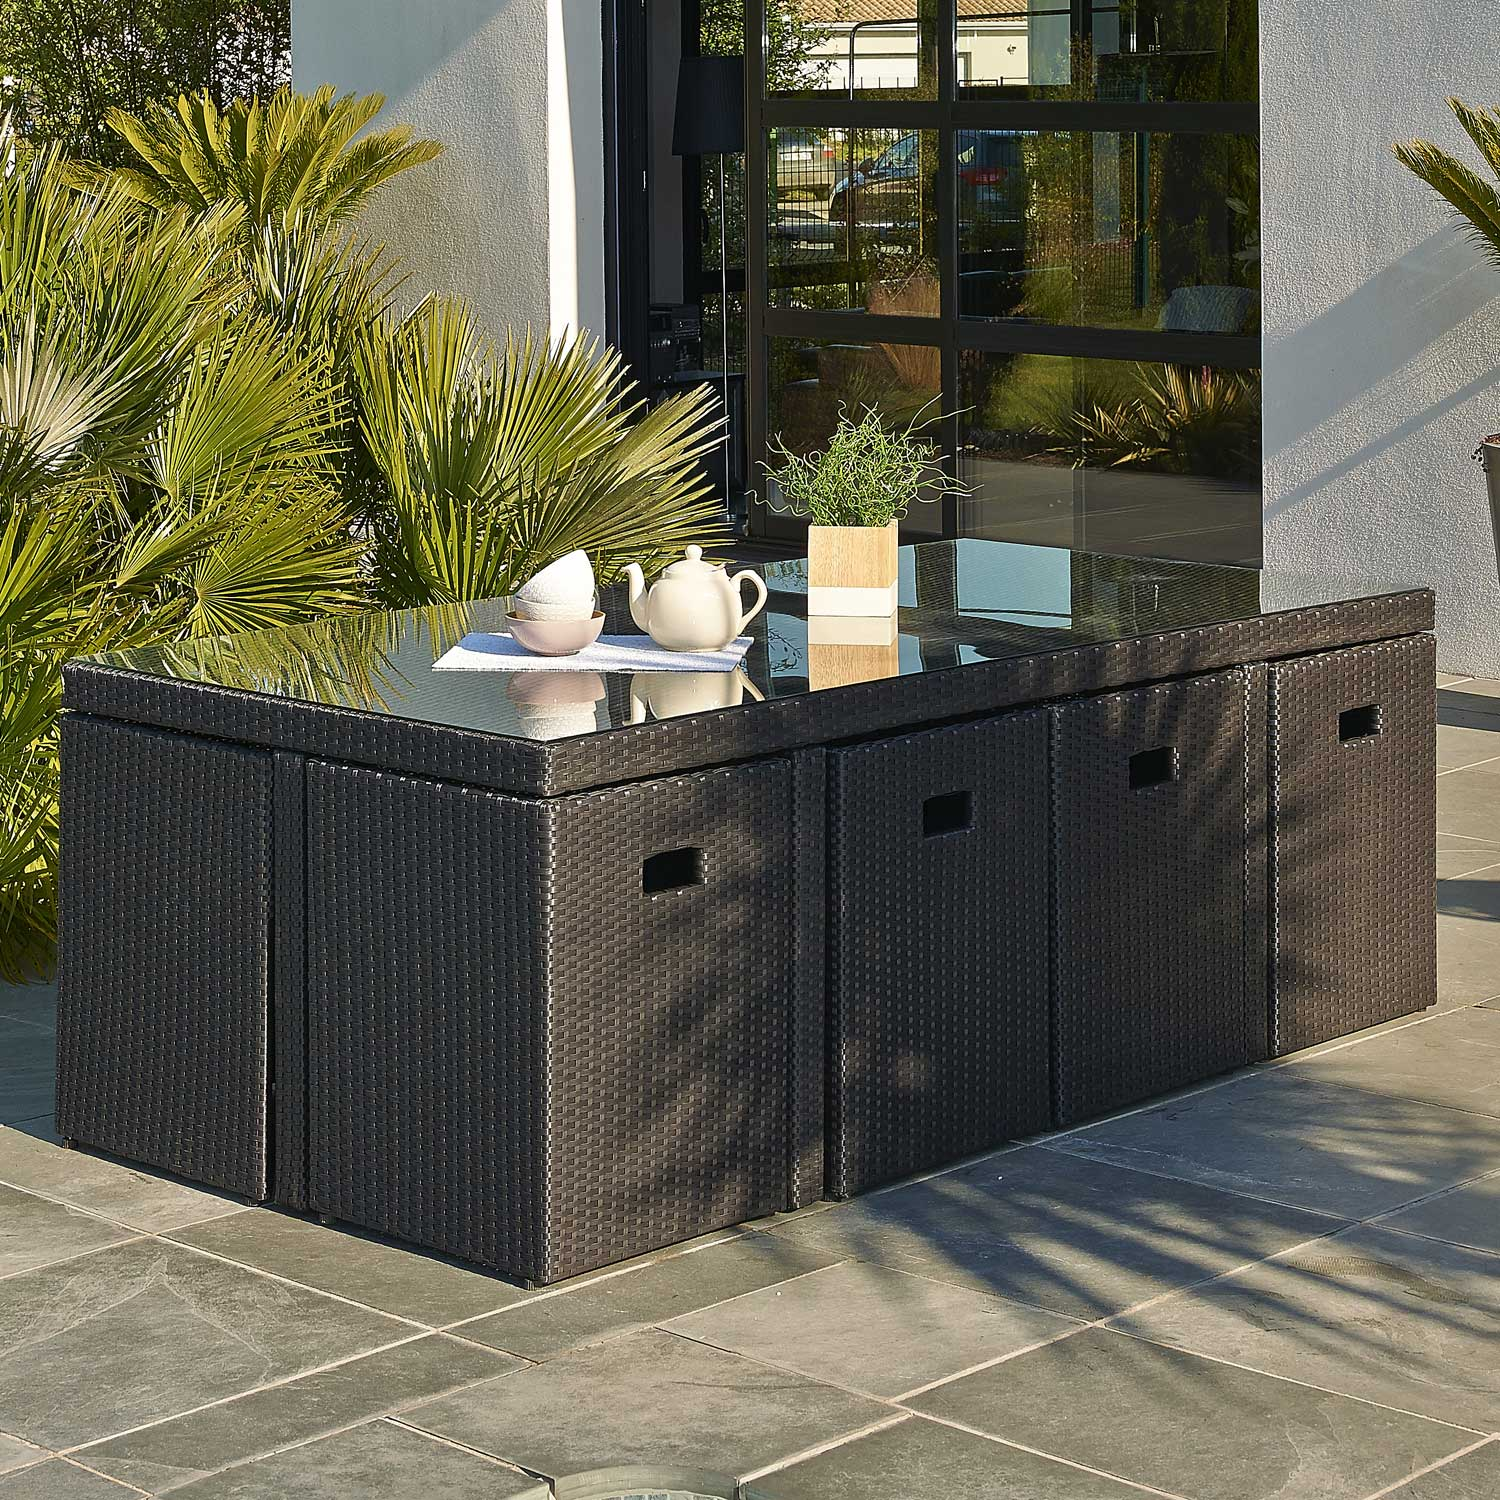 Salon de jardin encastrable r sine tress e noir 8 for Salon de jardin en resine tressee gris anthracite